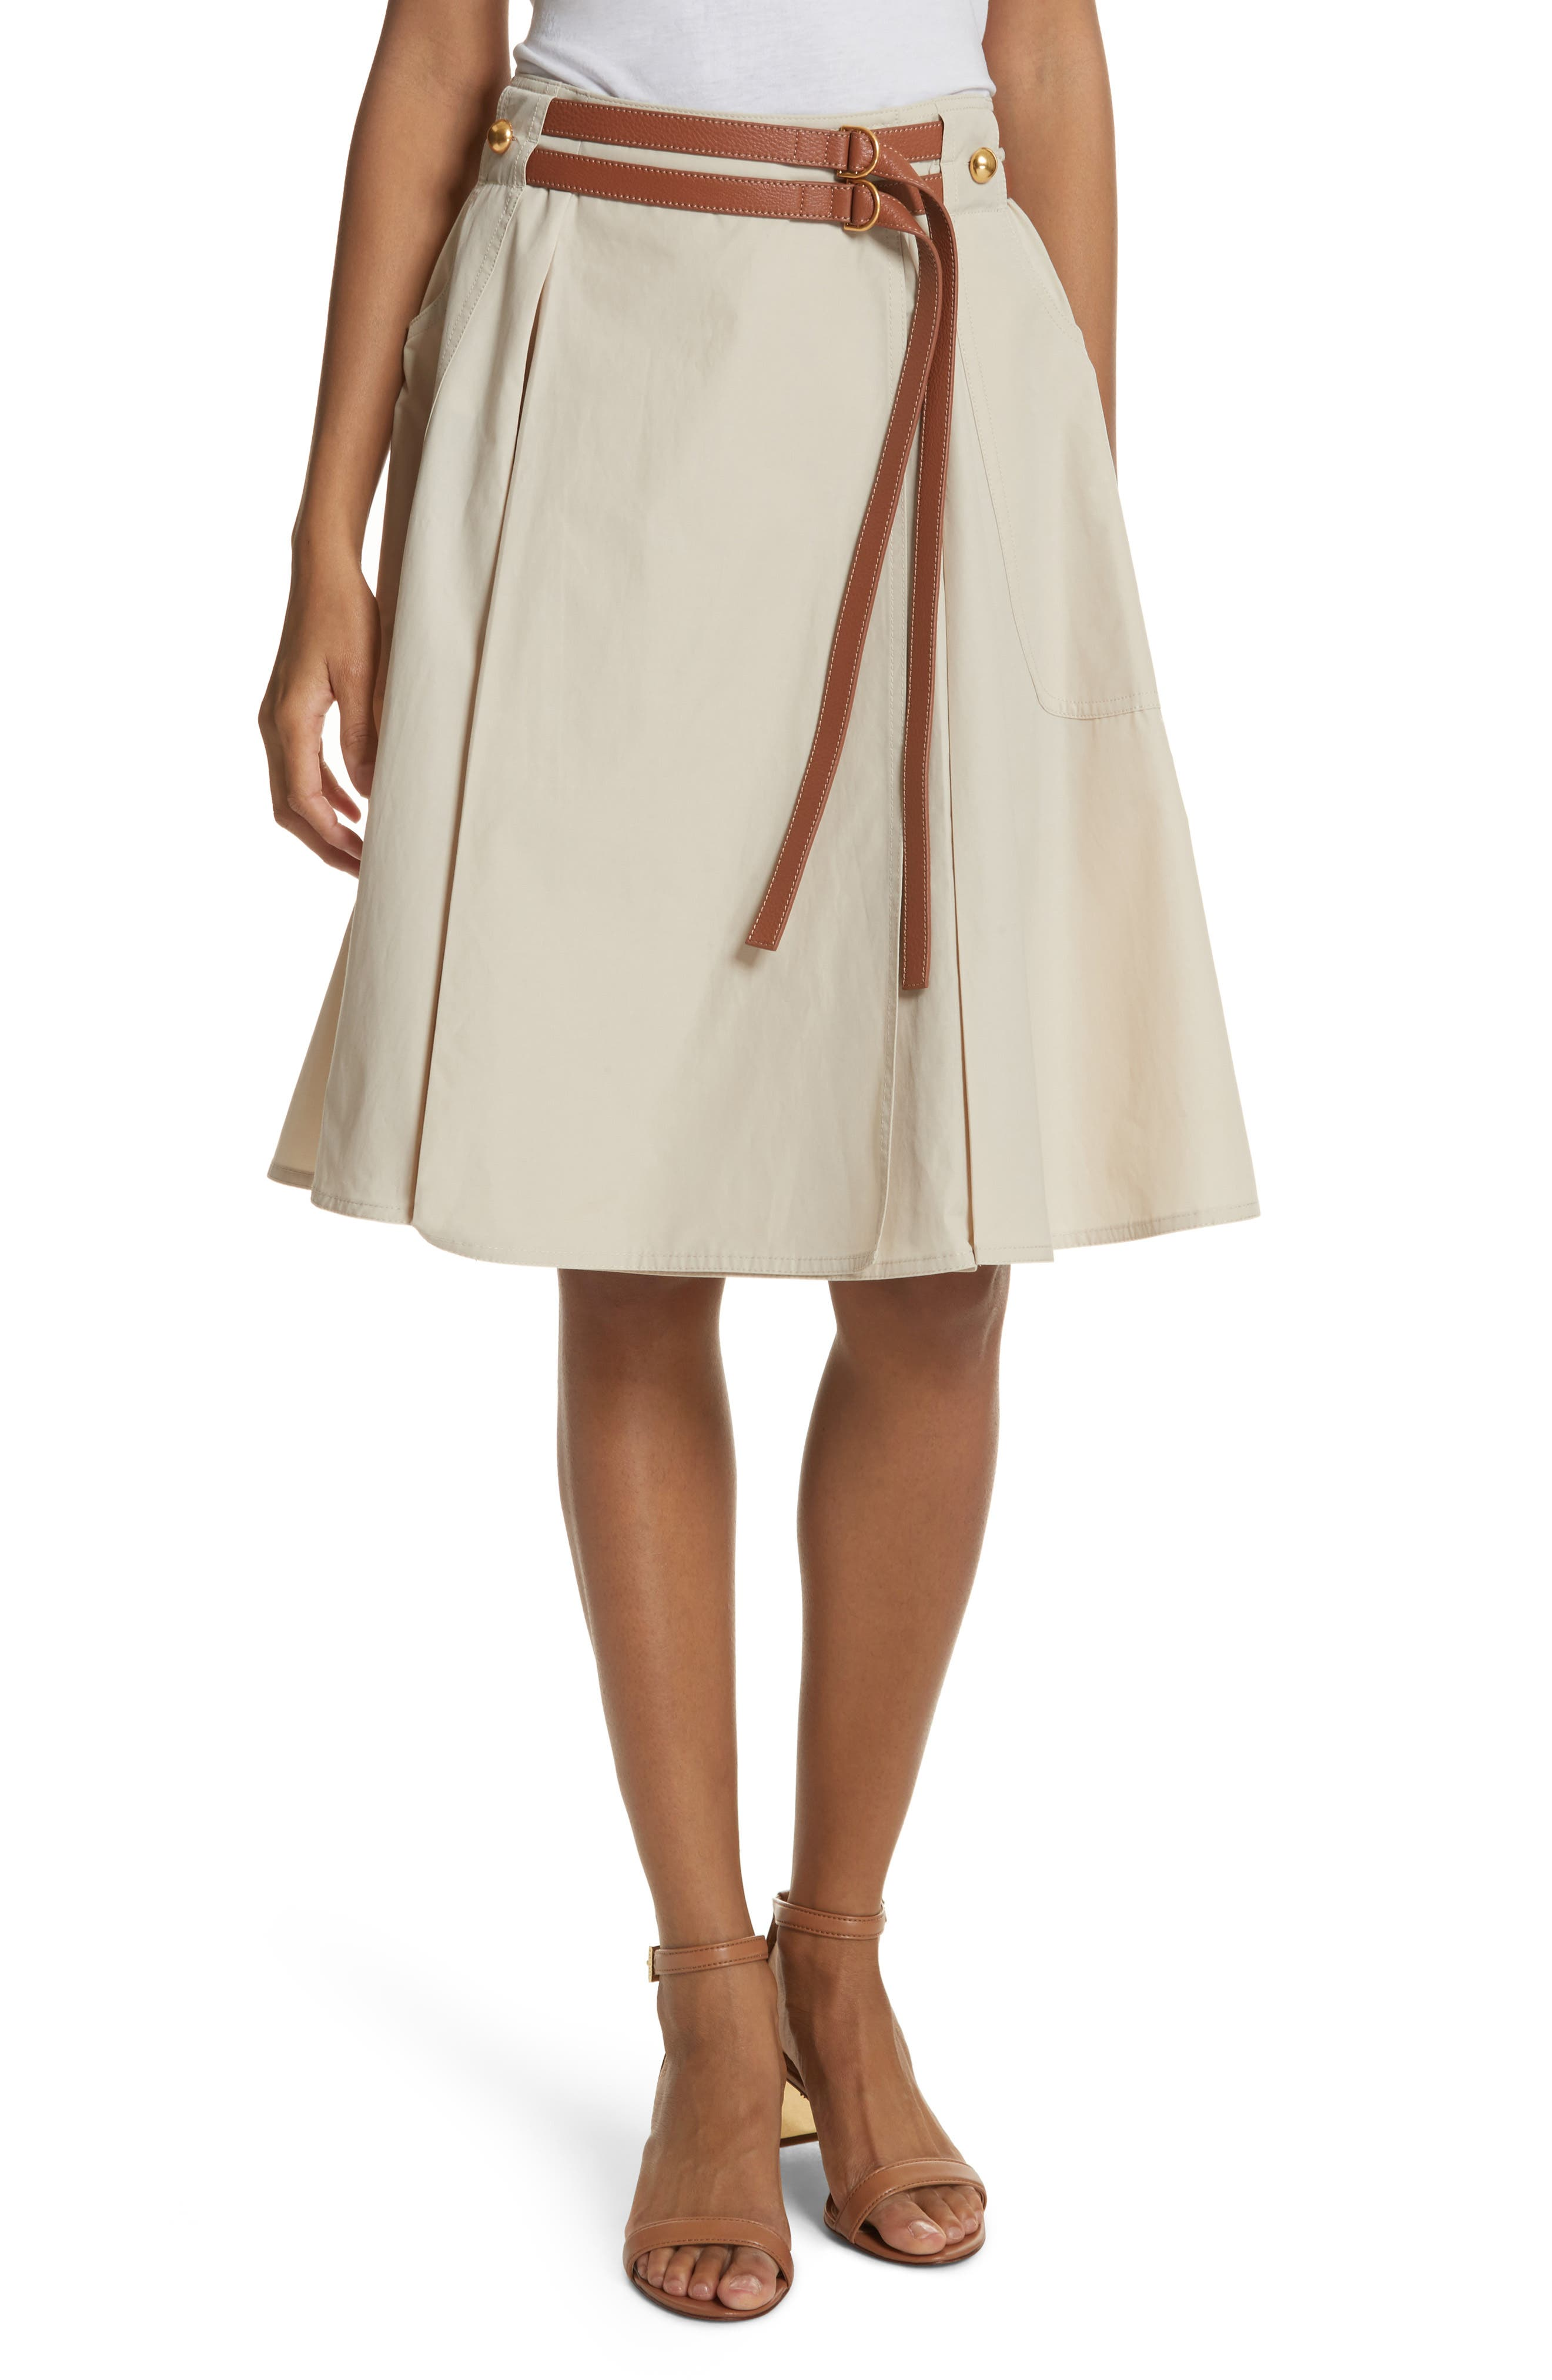 Tory Burch Betsy Belted Flare Skirt